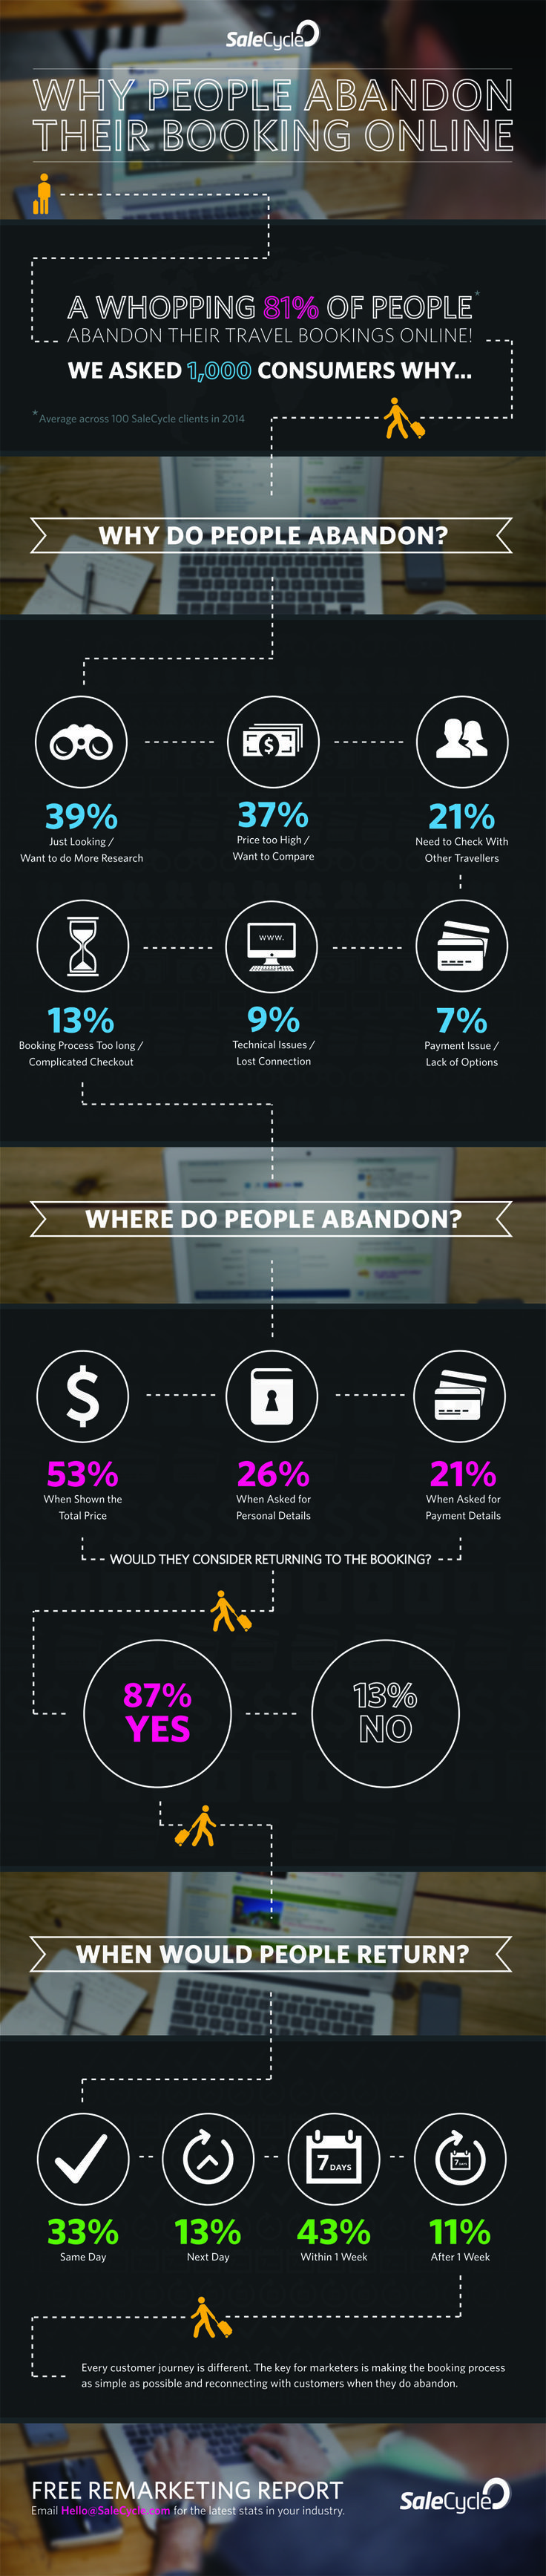 Infographic: Why People Abandon Their Bookings